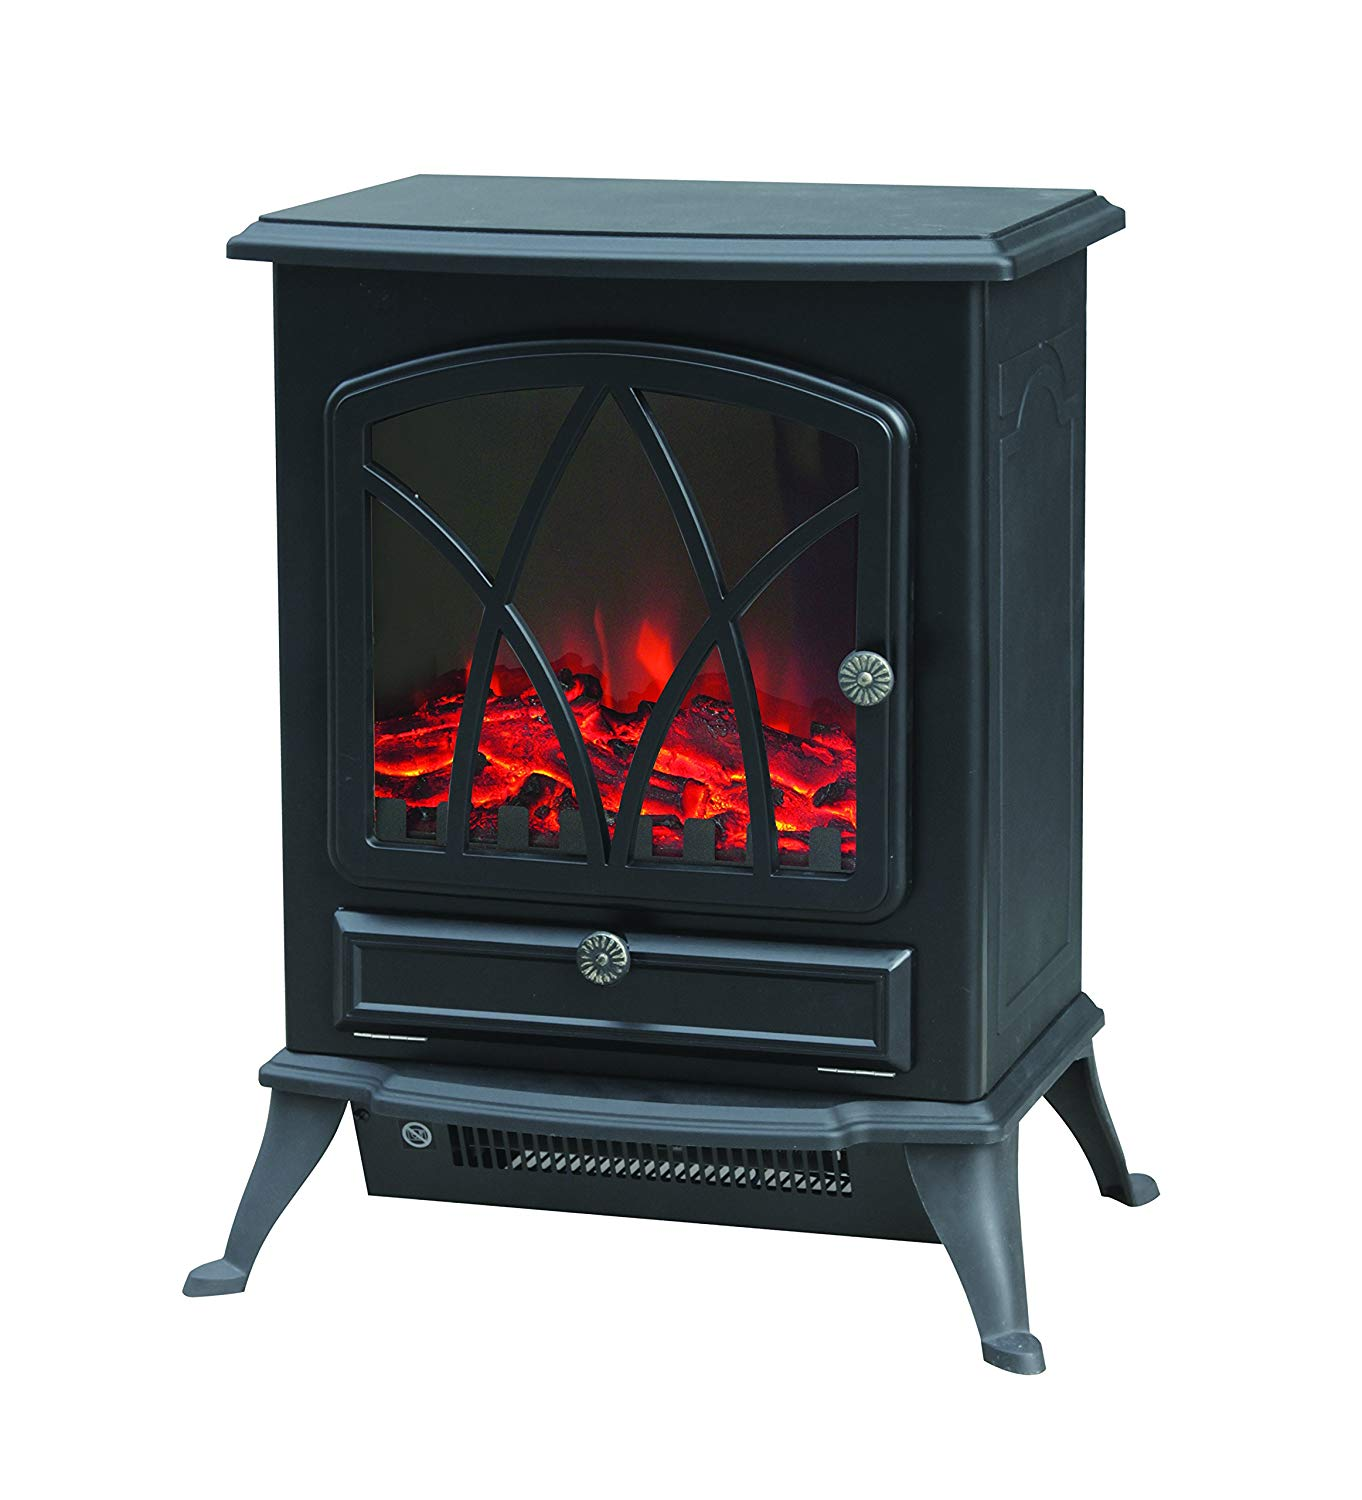 warmlite wl46018 2kw led flame effect stove fire in black g craggs ltd rh gcraggs co uk